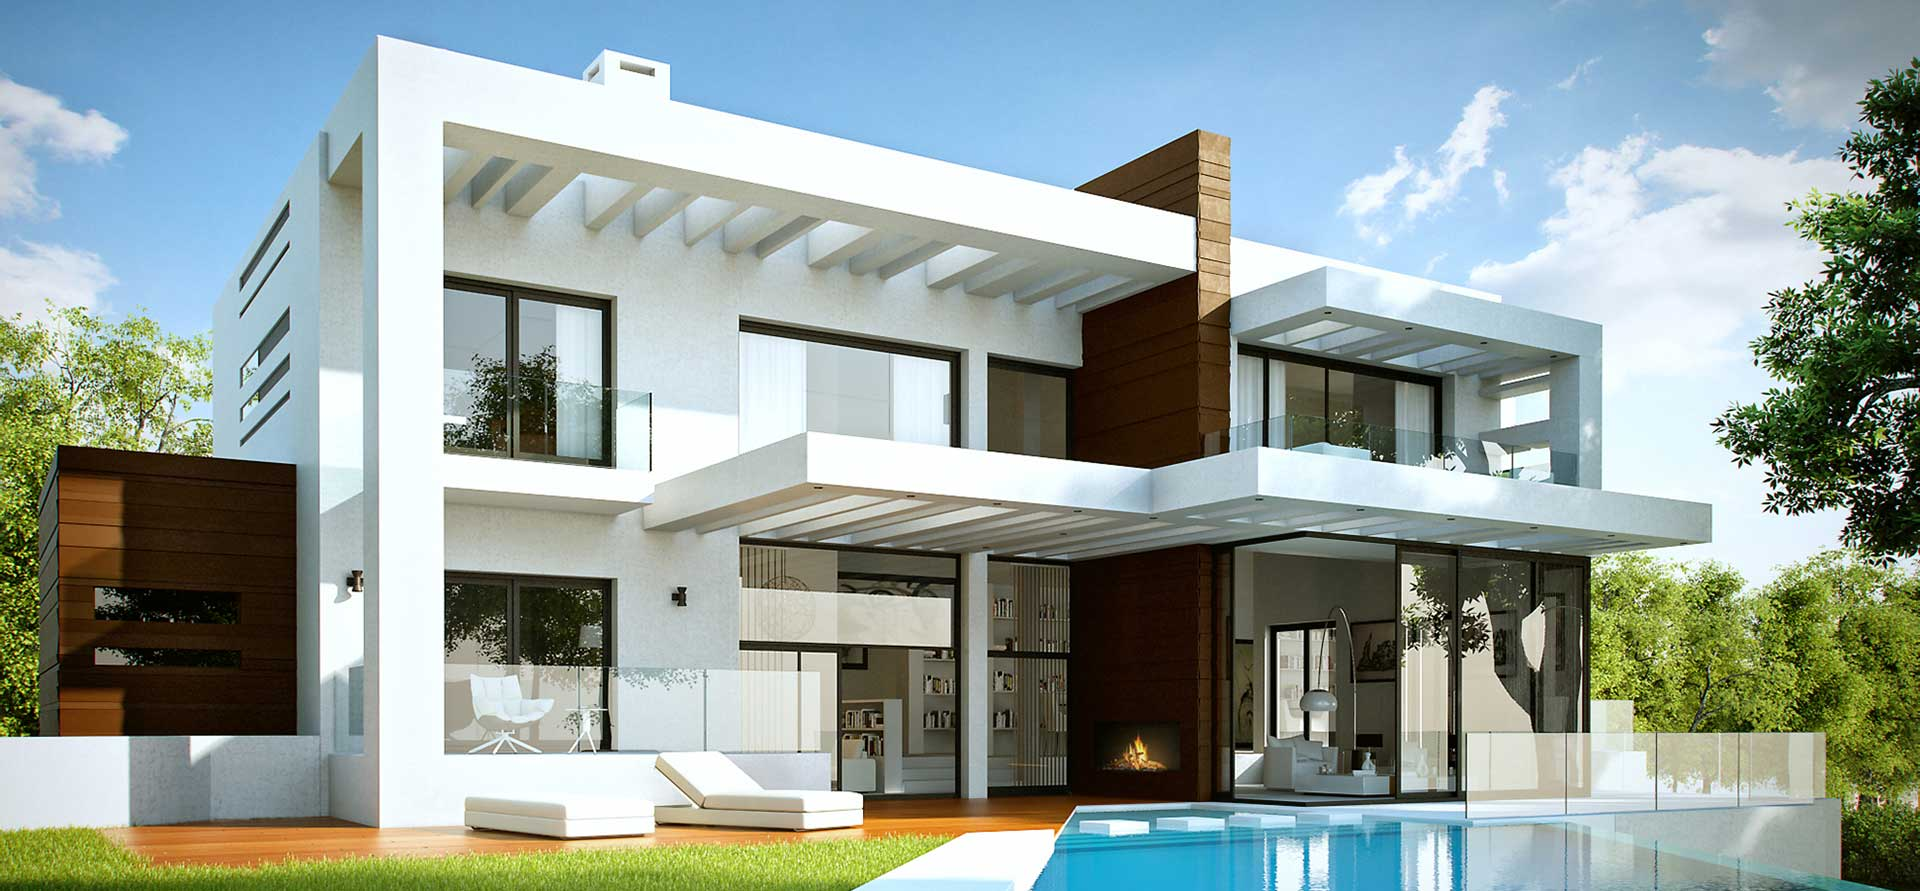 architect Marbella